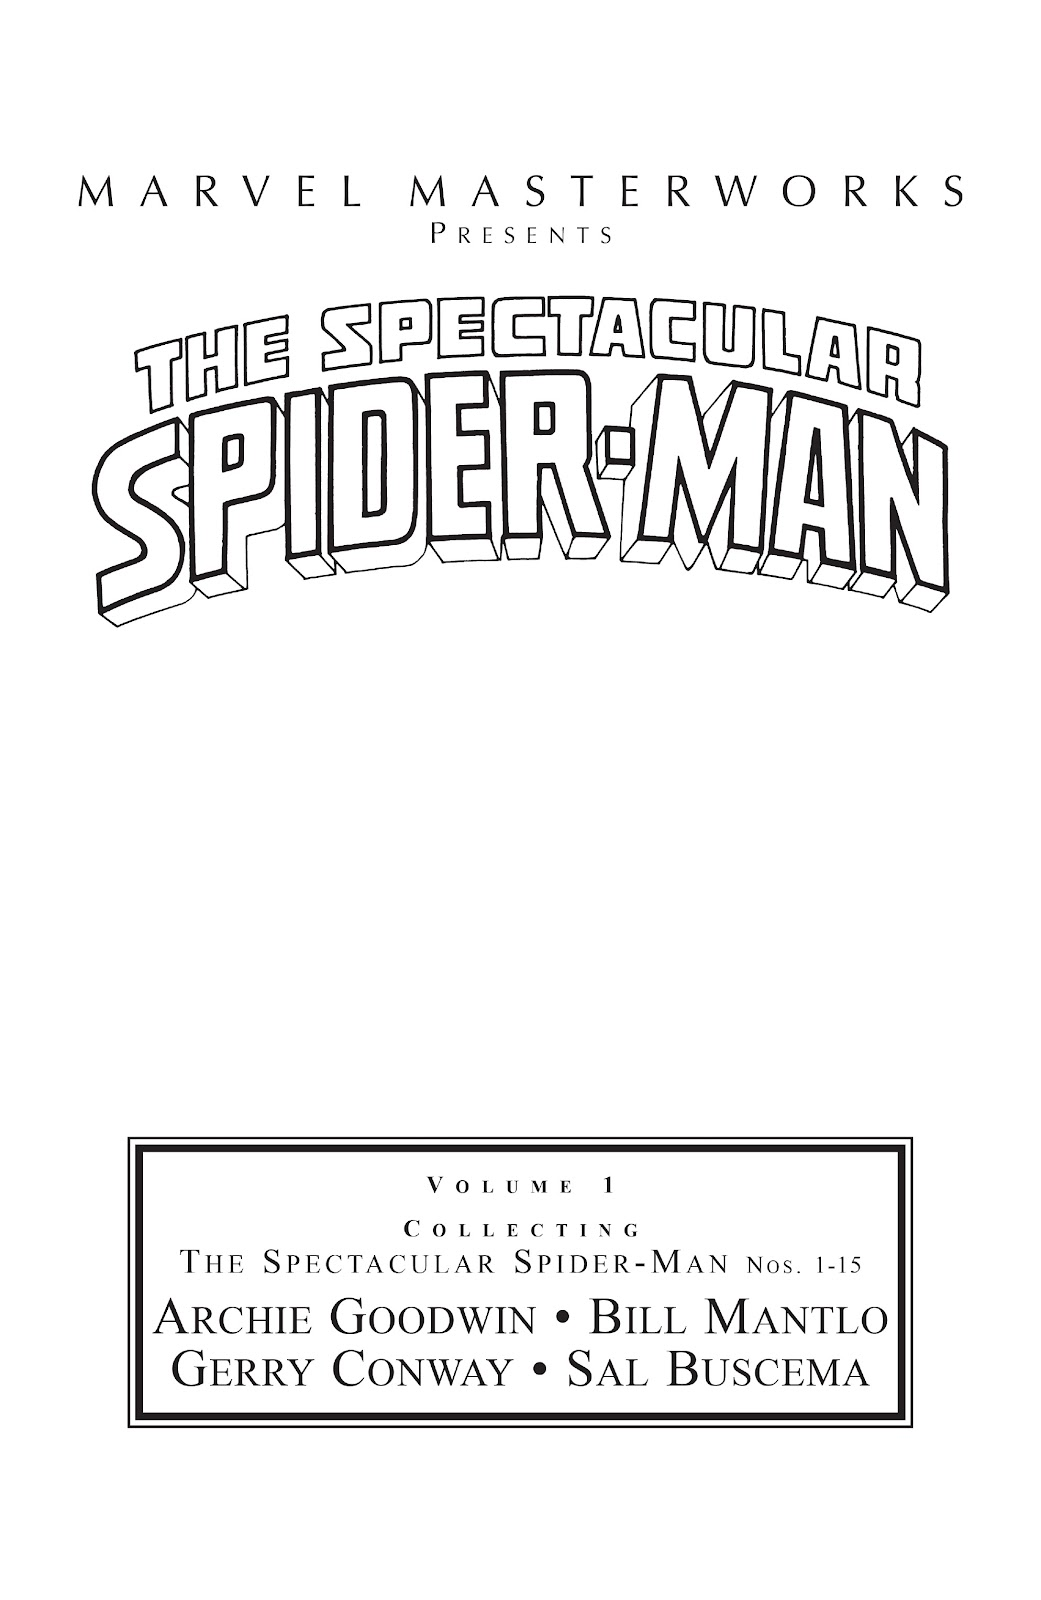 Read online Marvel Masterworks: The Spectacular Spider-Man comic -  Issue # TPB (Part 1) - 2